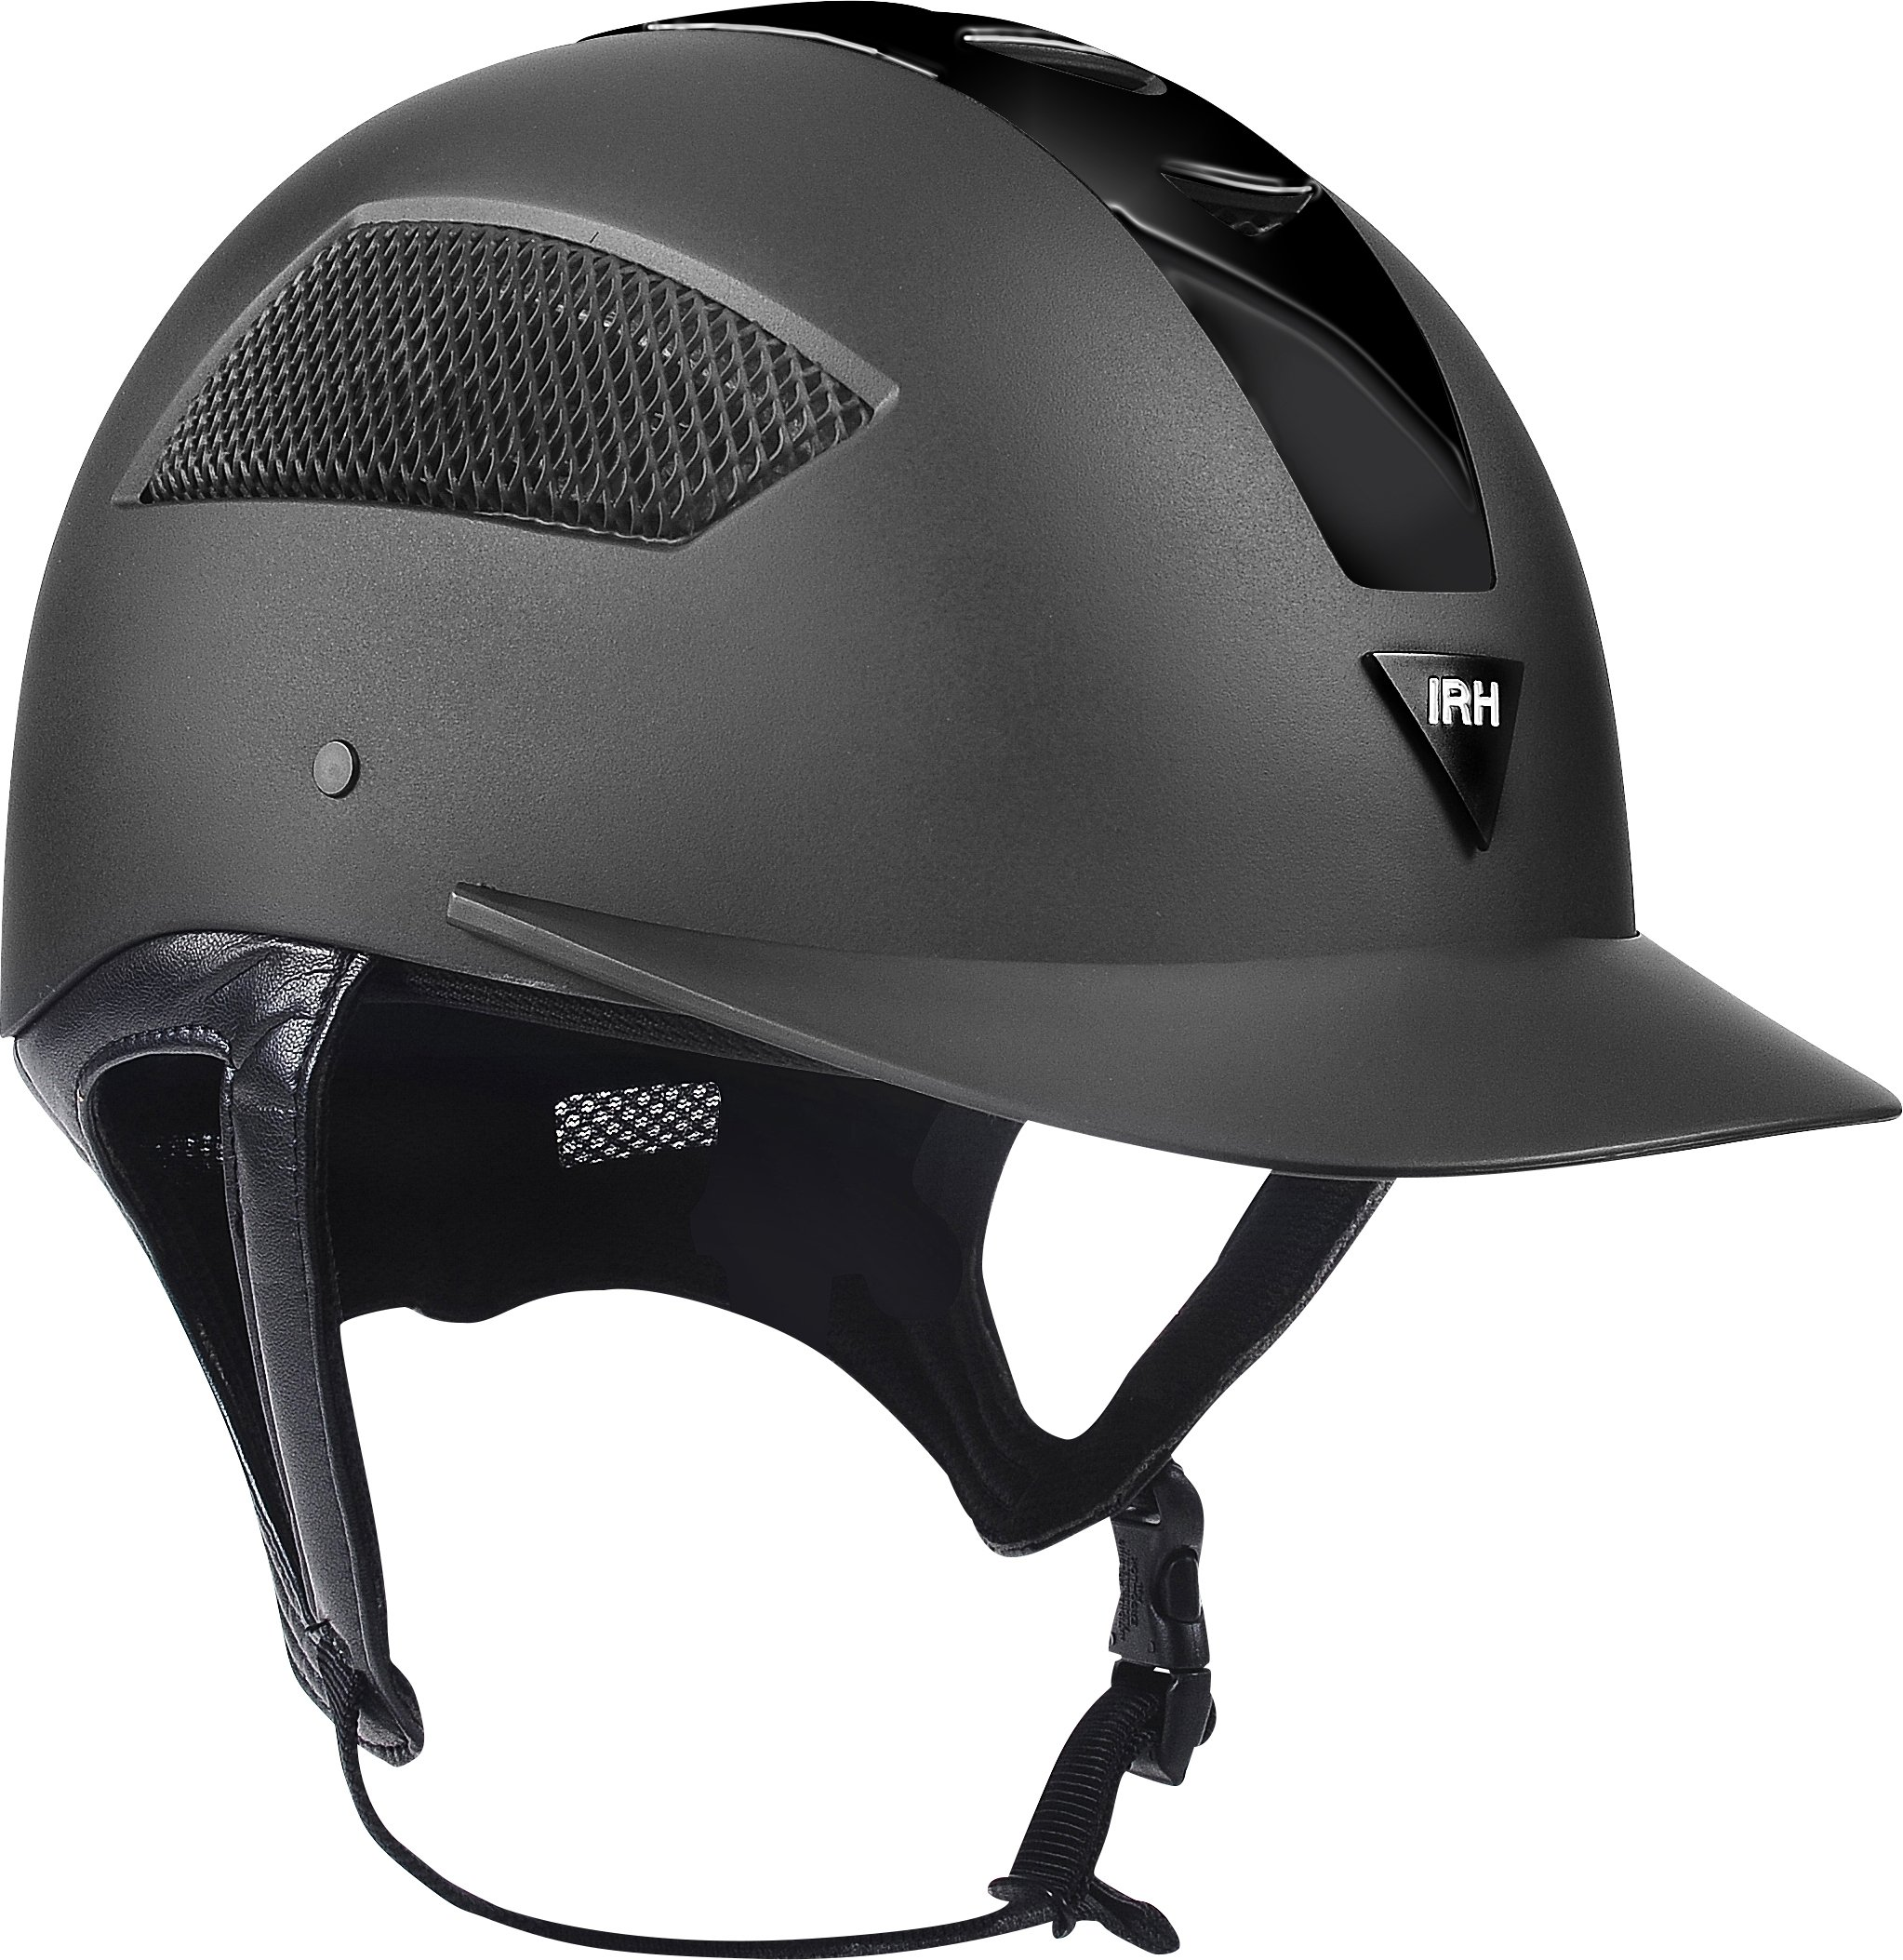 ELITE EXTREME Full Wrap-Around Harness Helmet with Matte Black Shell & Glossy Black, Size 6 7/8, Black by ELITE EXTREME (Image #1)